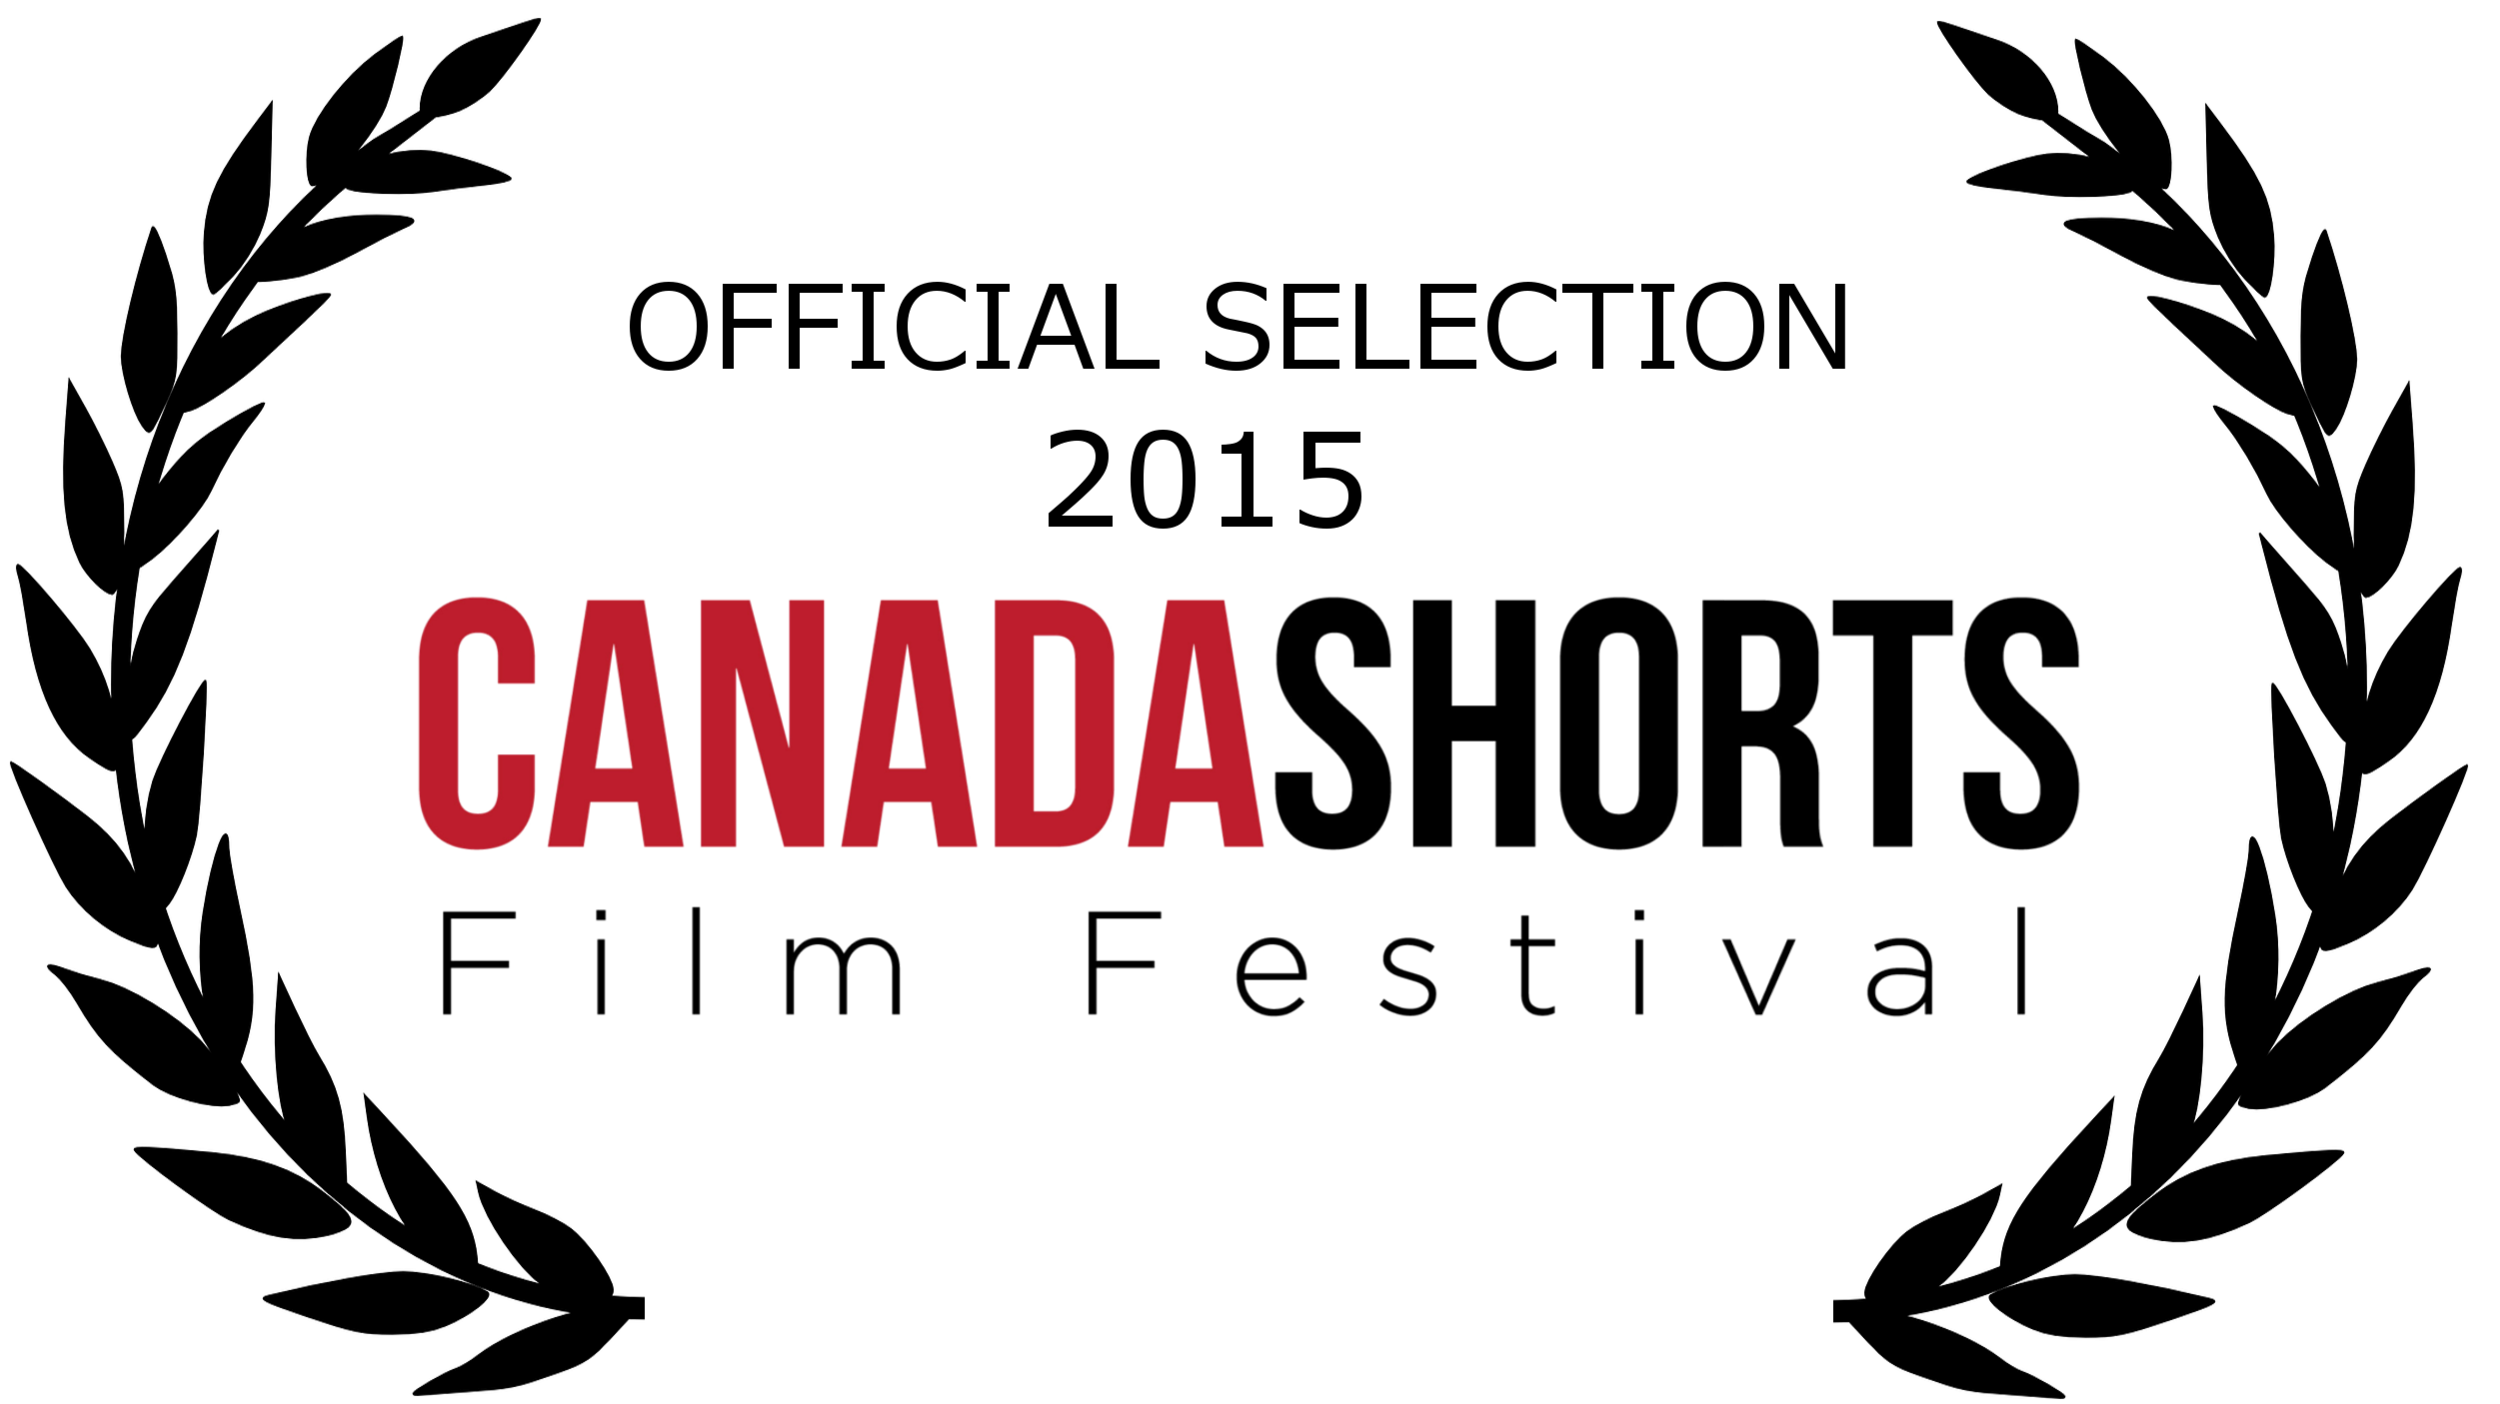 Canada-Shorts-official-selection-laurel-black.png